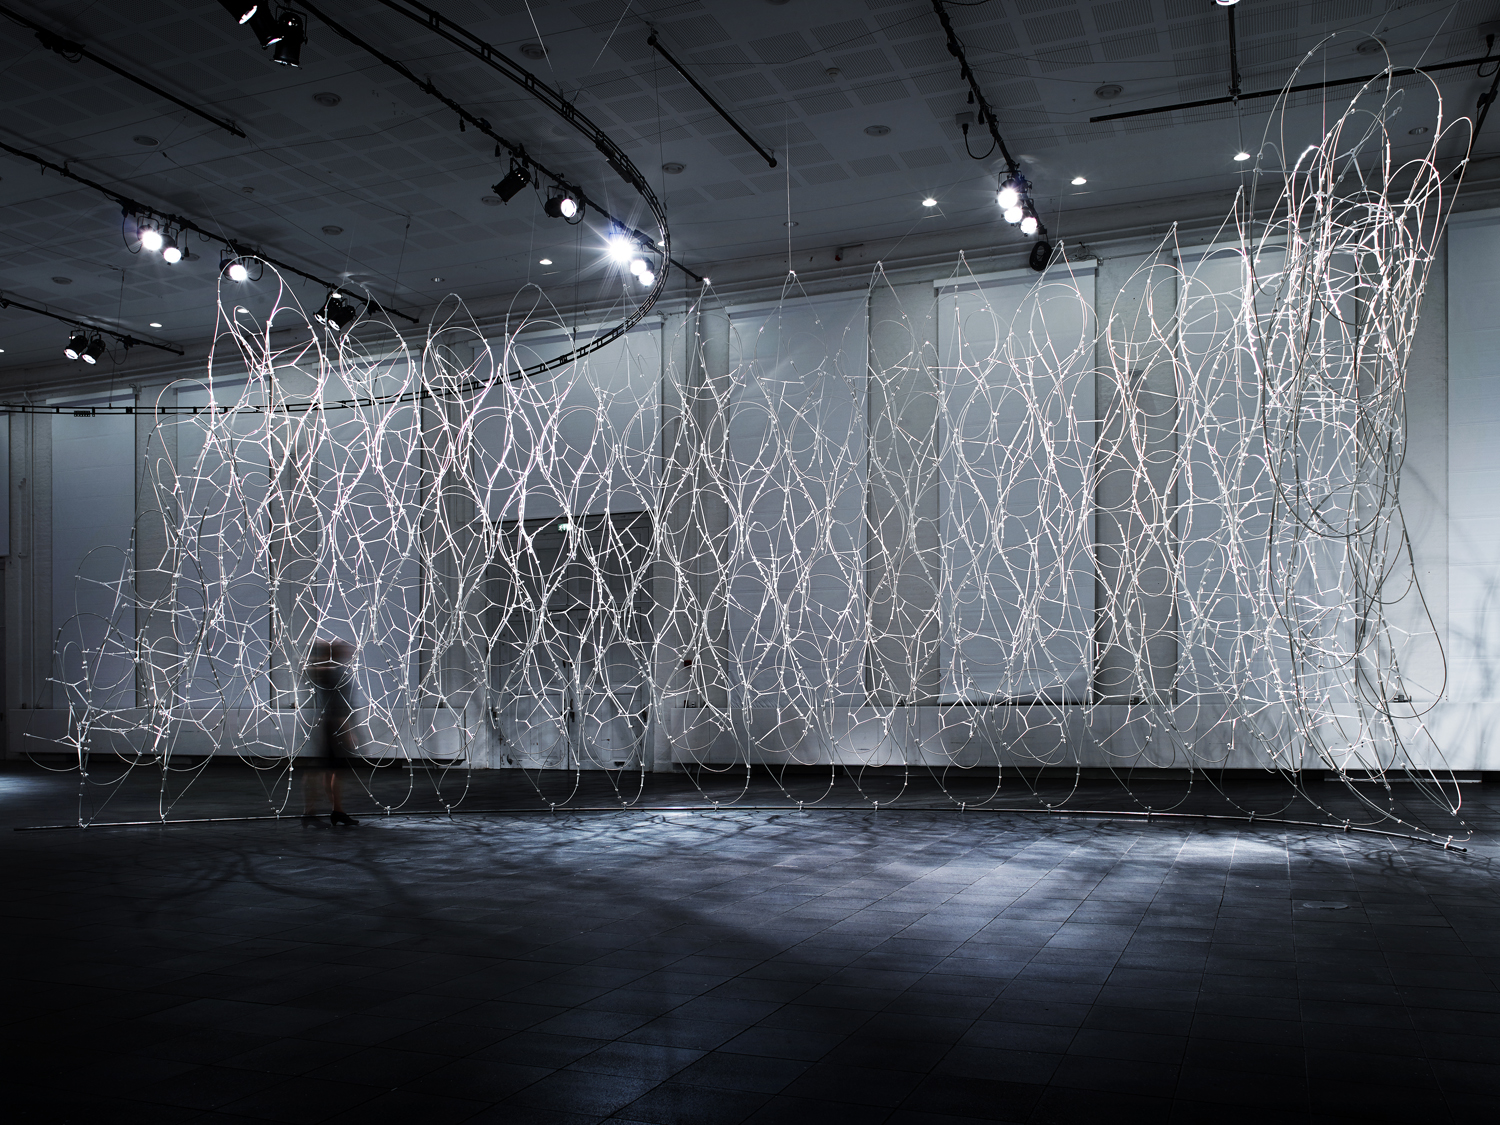 Lace Wall: a hybrid structure with a form that depends on the properties of the material